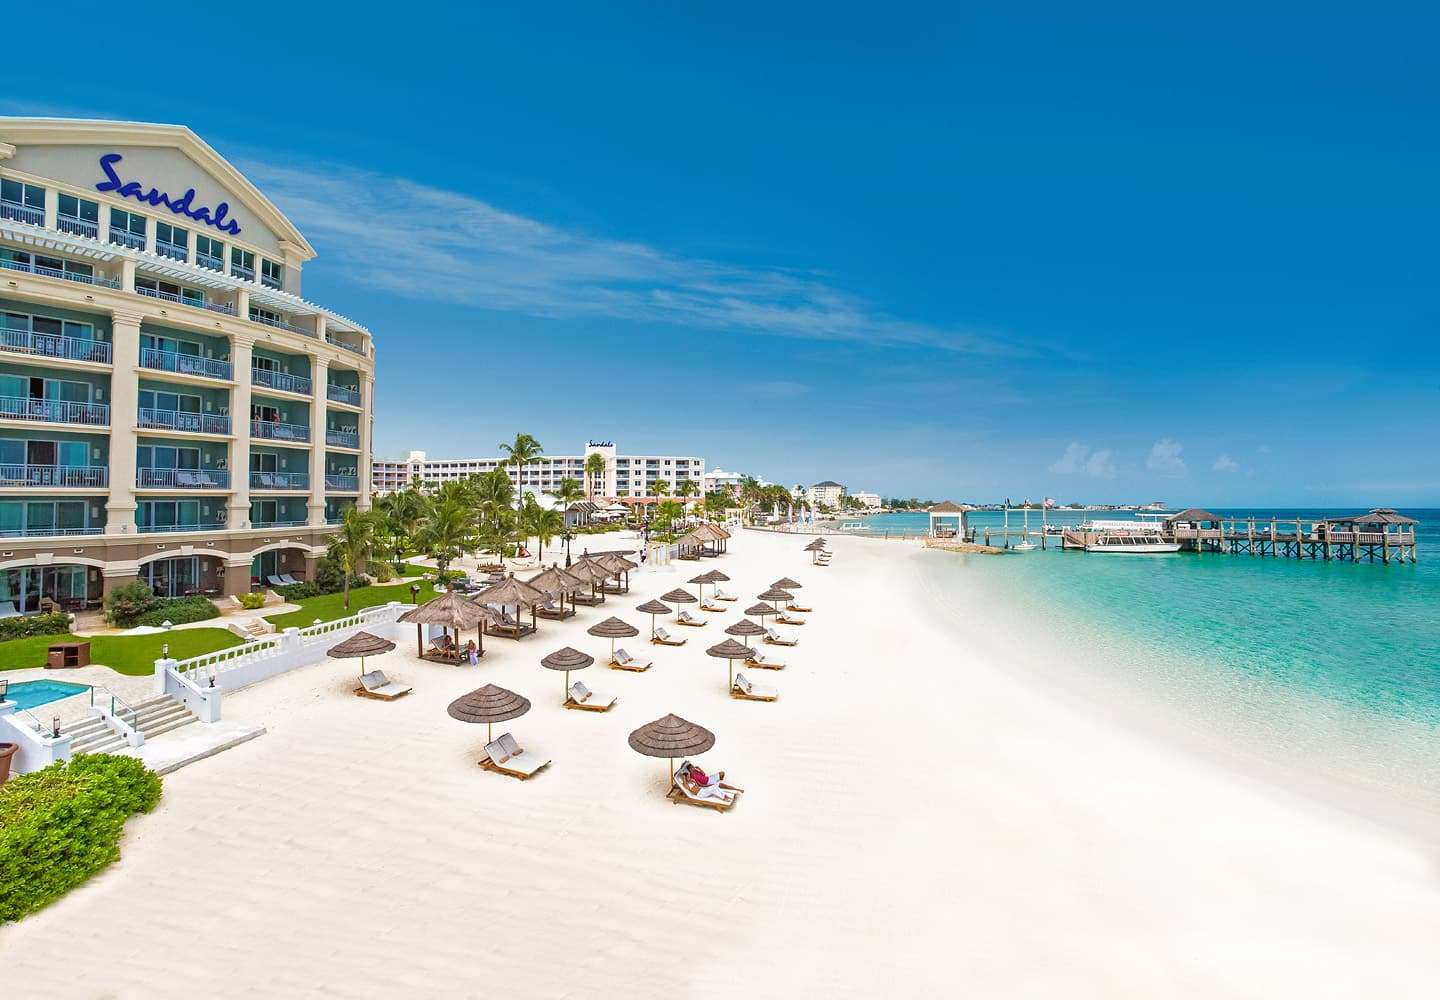 Sandals Royal Bahamian Spa Resort & Offshore Island, Nassau, Bahamas